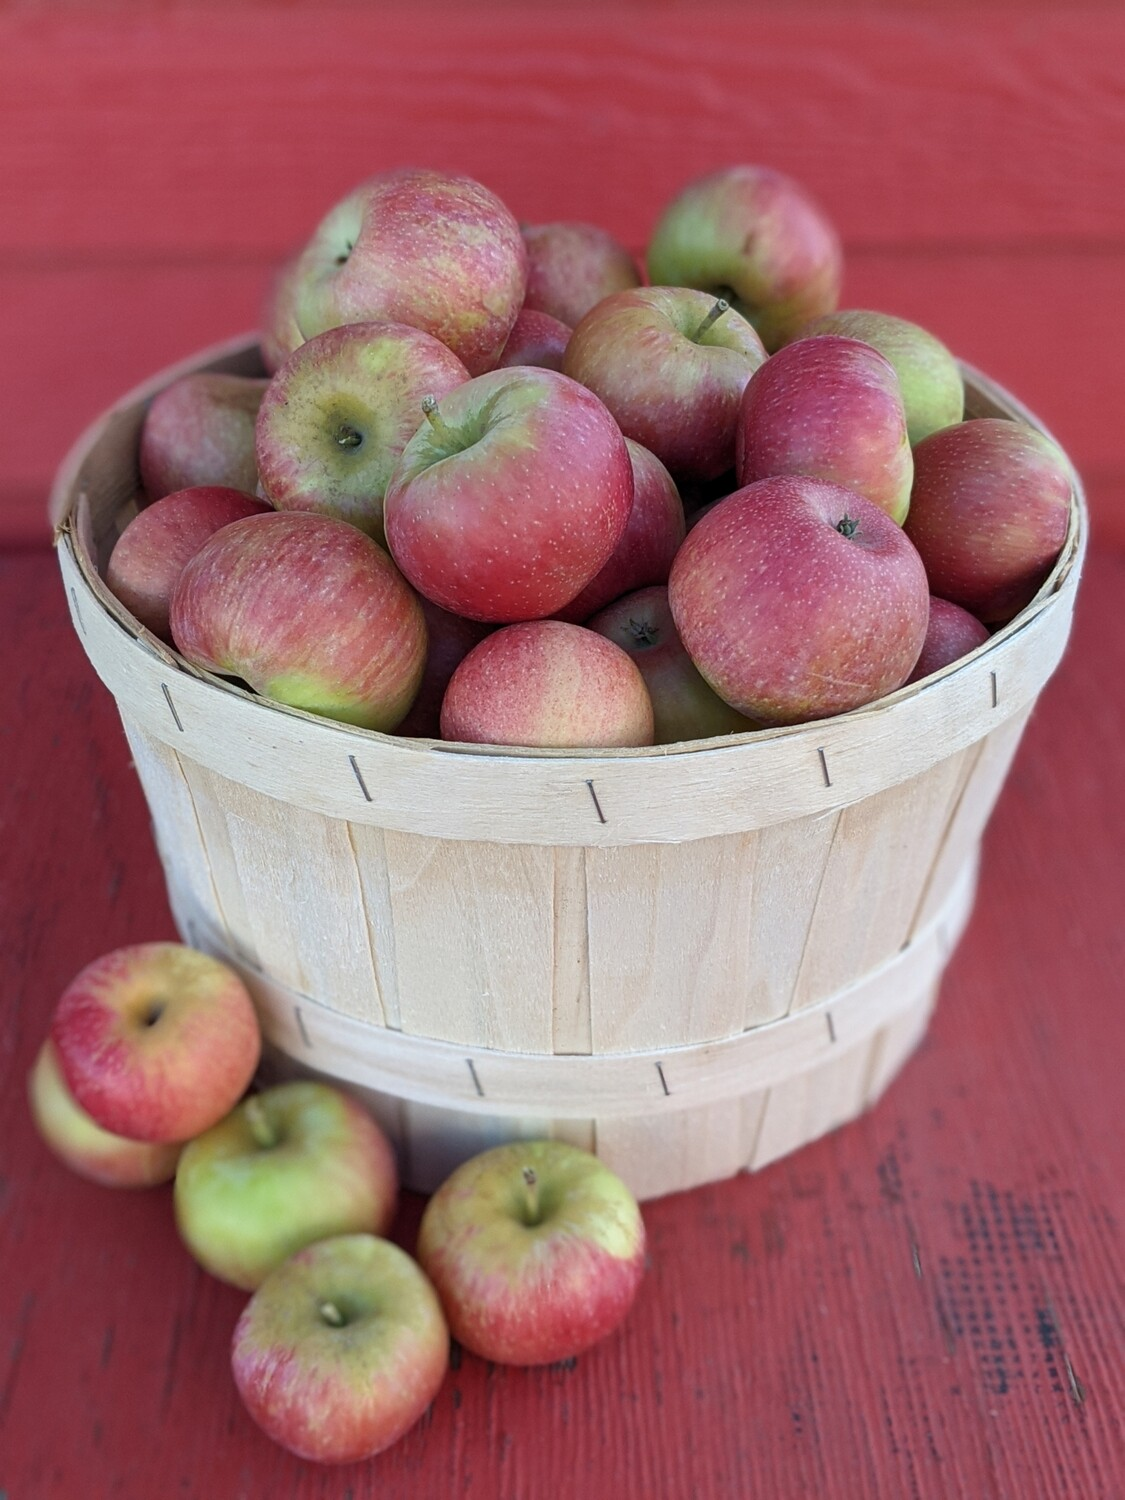 Pick-Your-Own Apples (Deluxe 1 Peck Basket) approximately 12 lbs